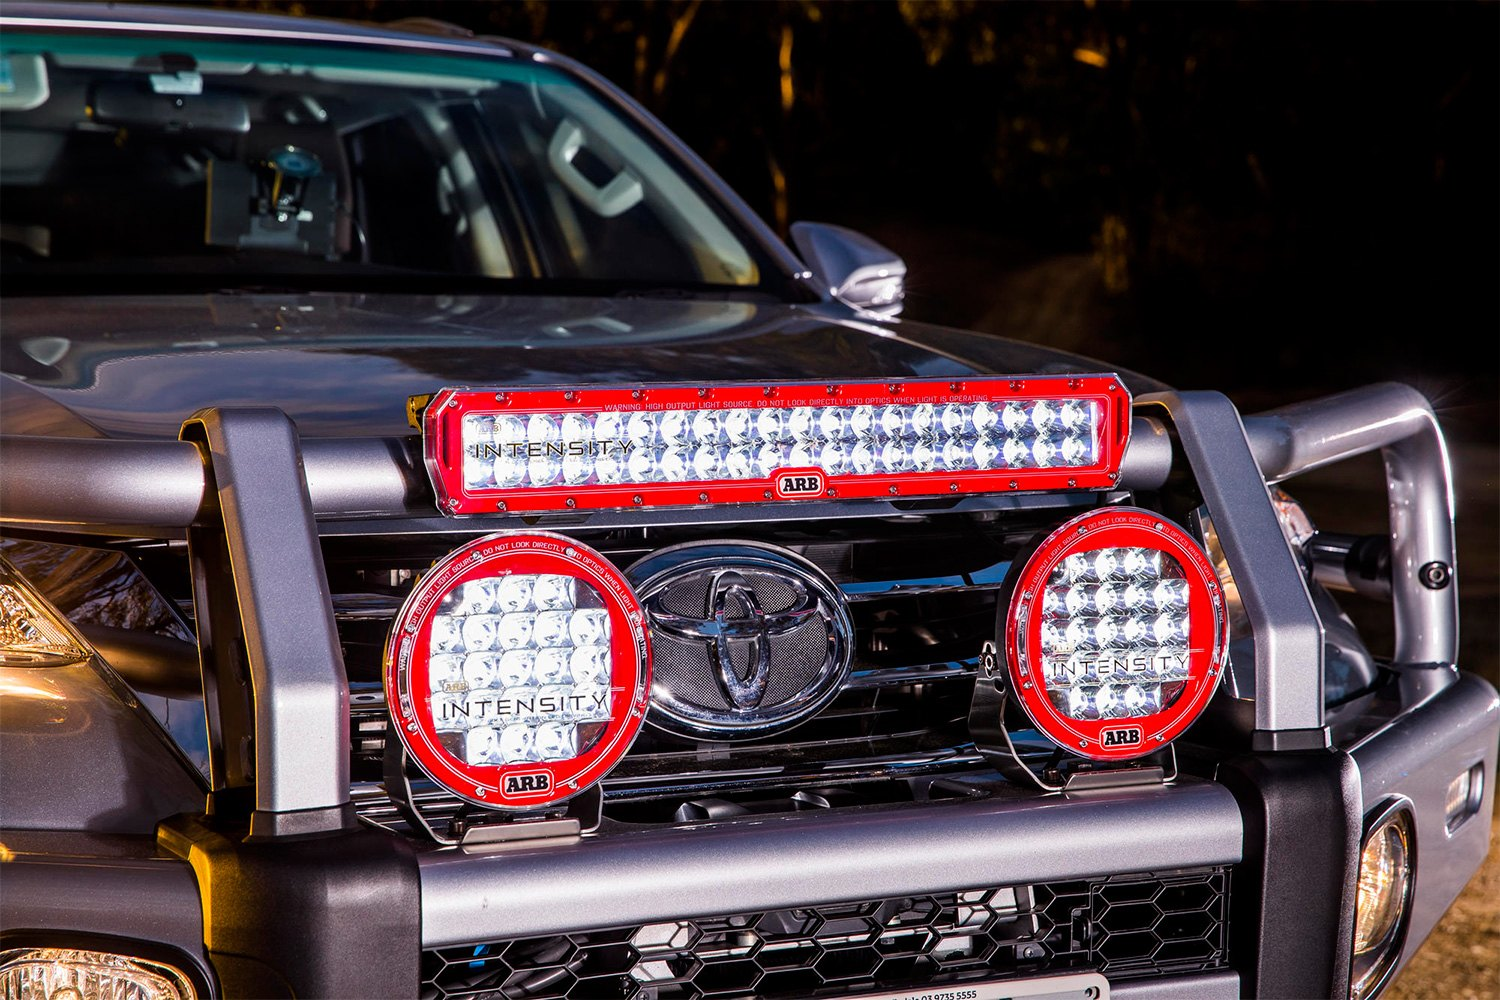 Arb intensity 20 115w dual row blackred housing led light bar installed arb intensity dual row led light bar mozeypictures Choice Image